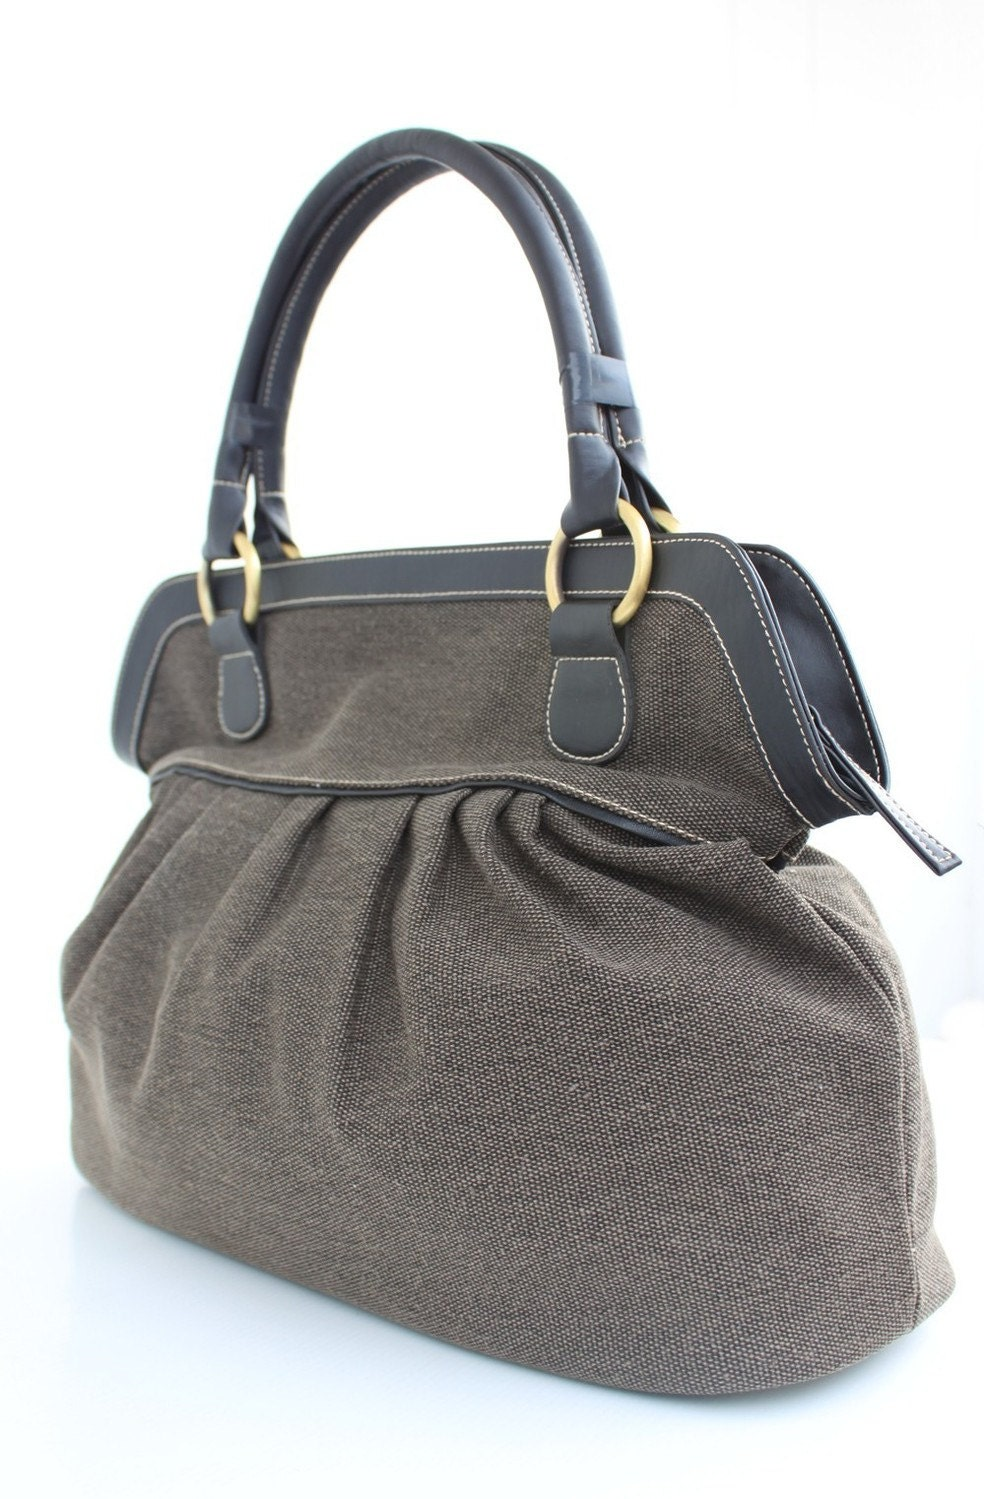 Brown Chocolate Color Handbag